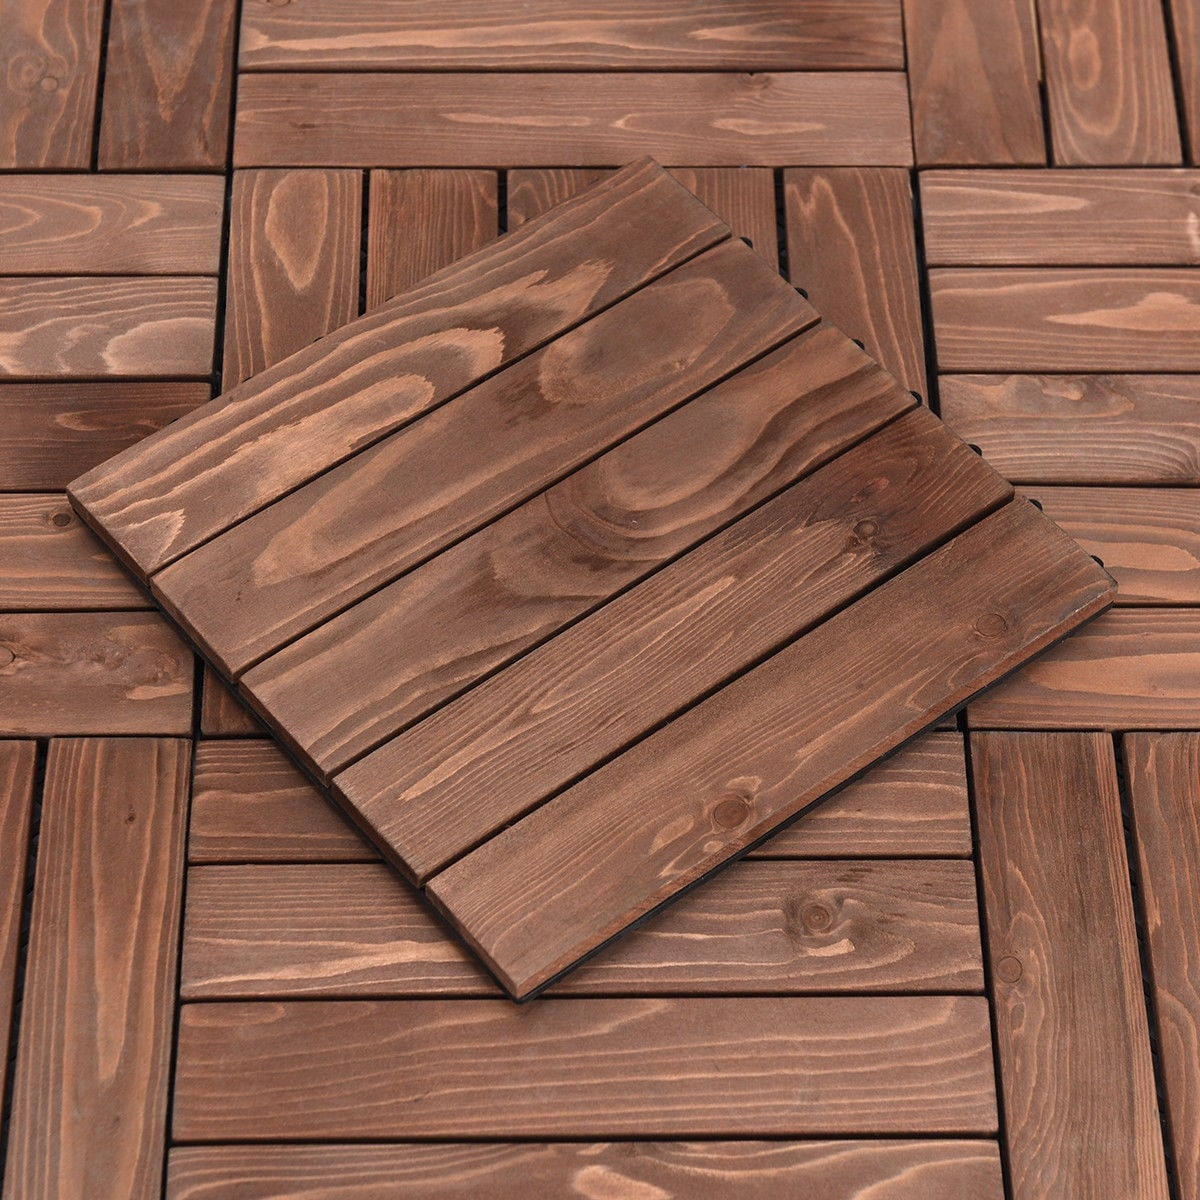 Costway 11pcs Deck Tiles Fir Wood Patio Pavers Interlocking Decking Flooring 12x12